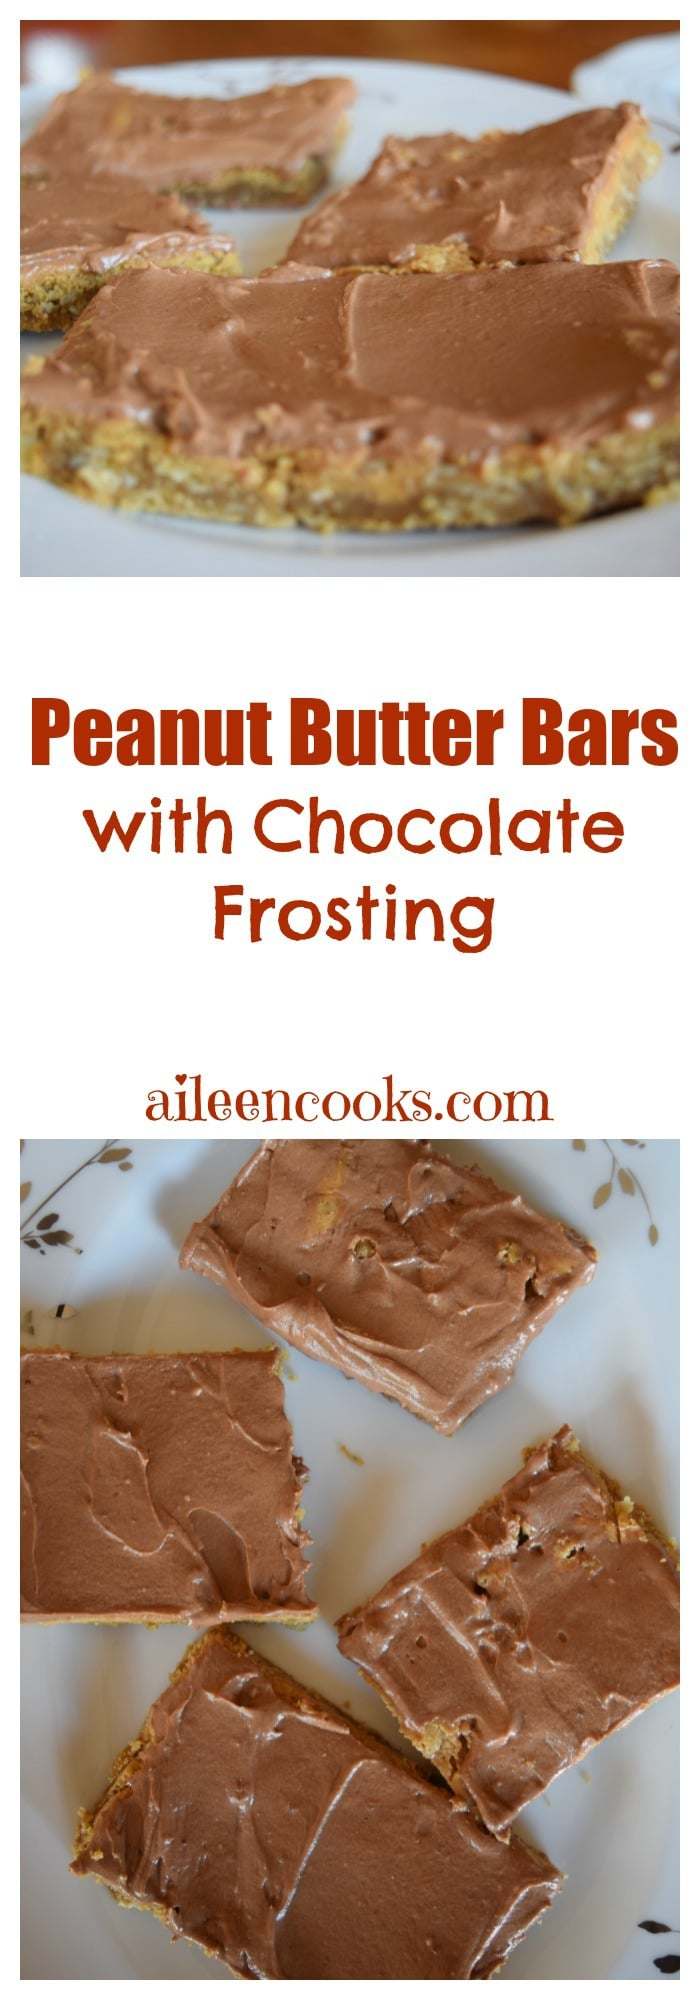 Peanut Butter Bars with Chocolate Frosting made with a chewy peanut butter cookie base, natural peanut butter, and creamy chocolate frosting. You even get to sneak some whole grains into your kid's diet with this recipe! Recipe for Peanut Butter Bars with Chocolate Frosting from aileencooks.com